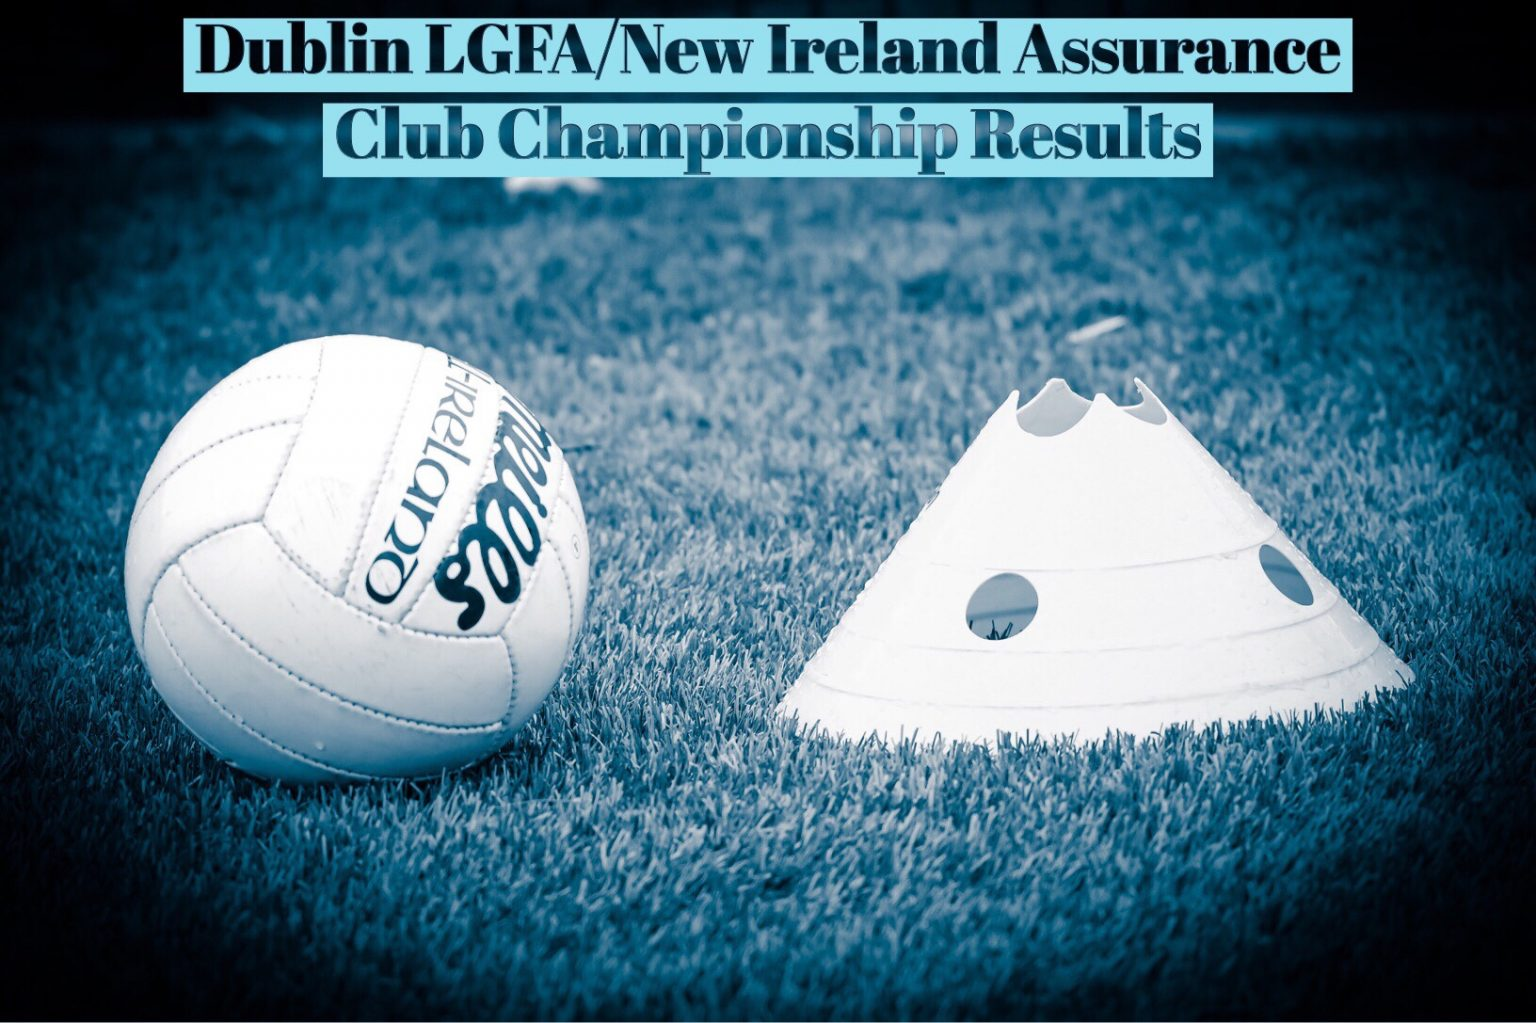 White ball and cone on a grass pitch with a banner at the top which reads Dublin LGFA/New Ireland Assurance Club Championship Results